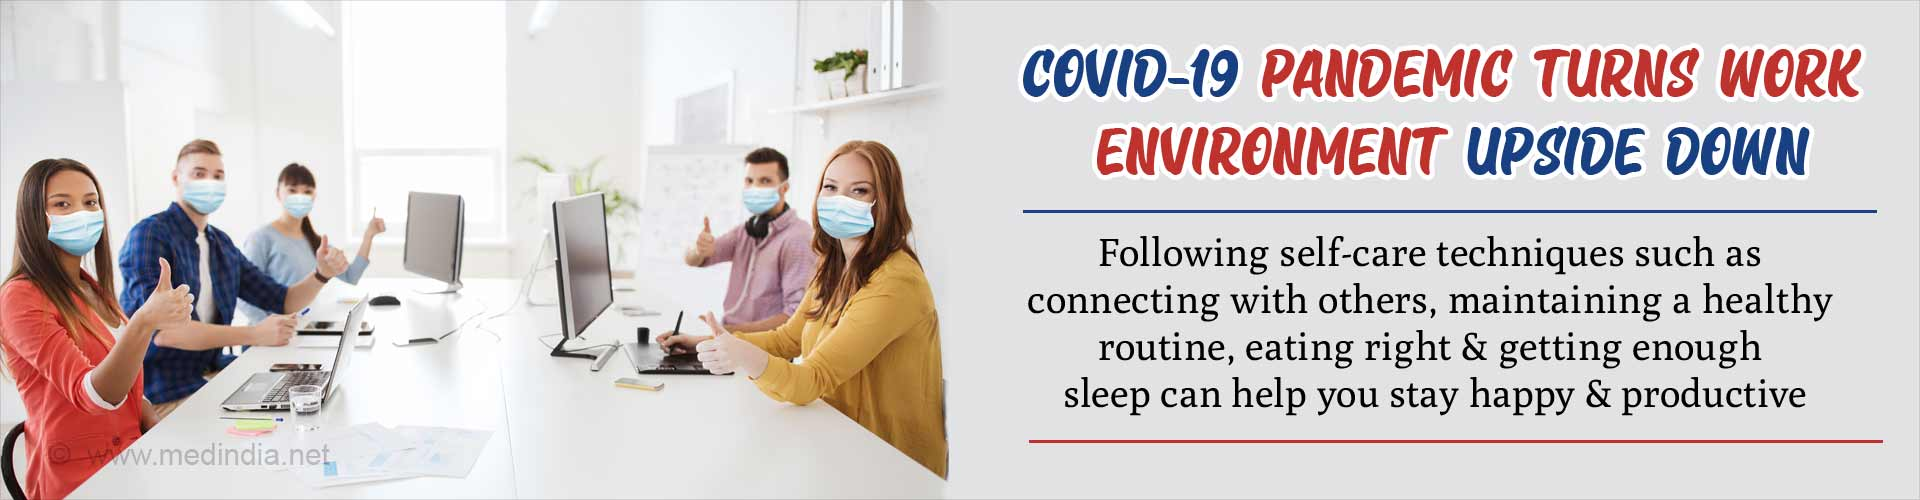 COVID-19 Outbreak: Smart 5 Ways to Keep Employees More Happy and Productive